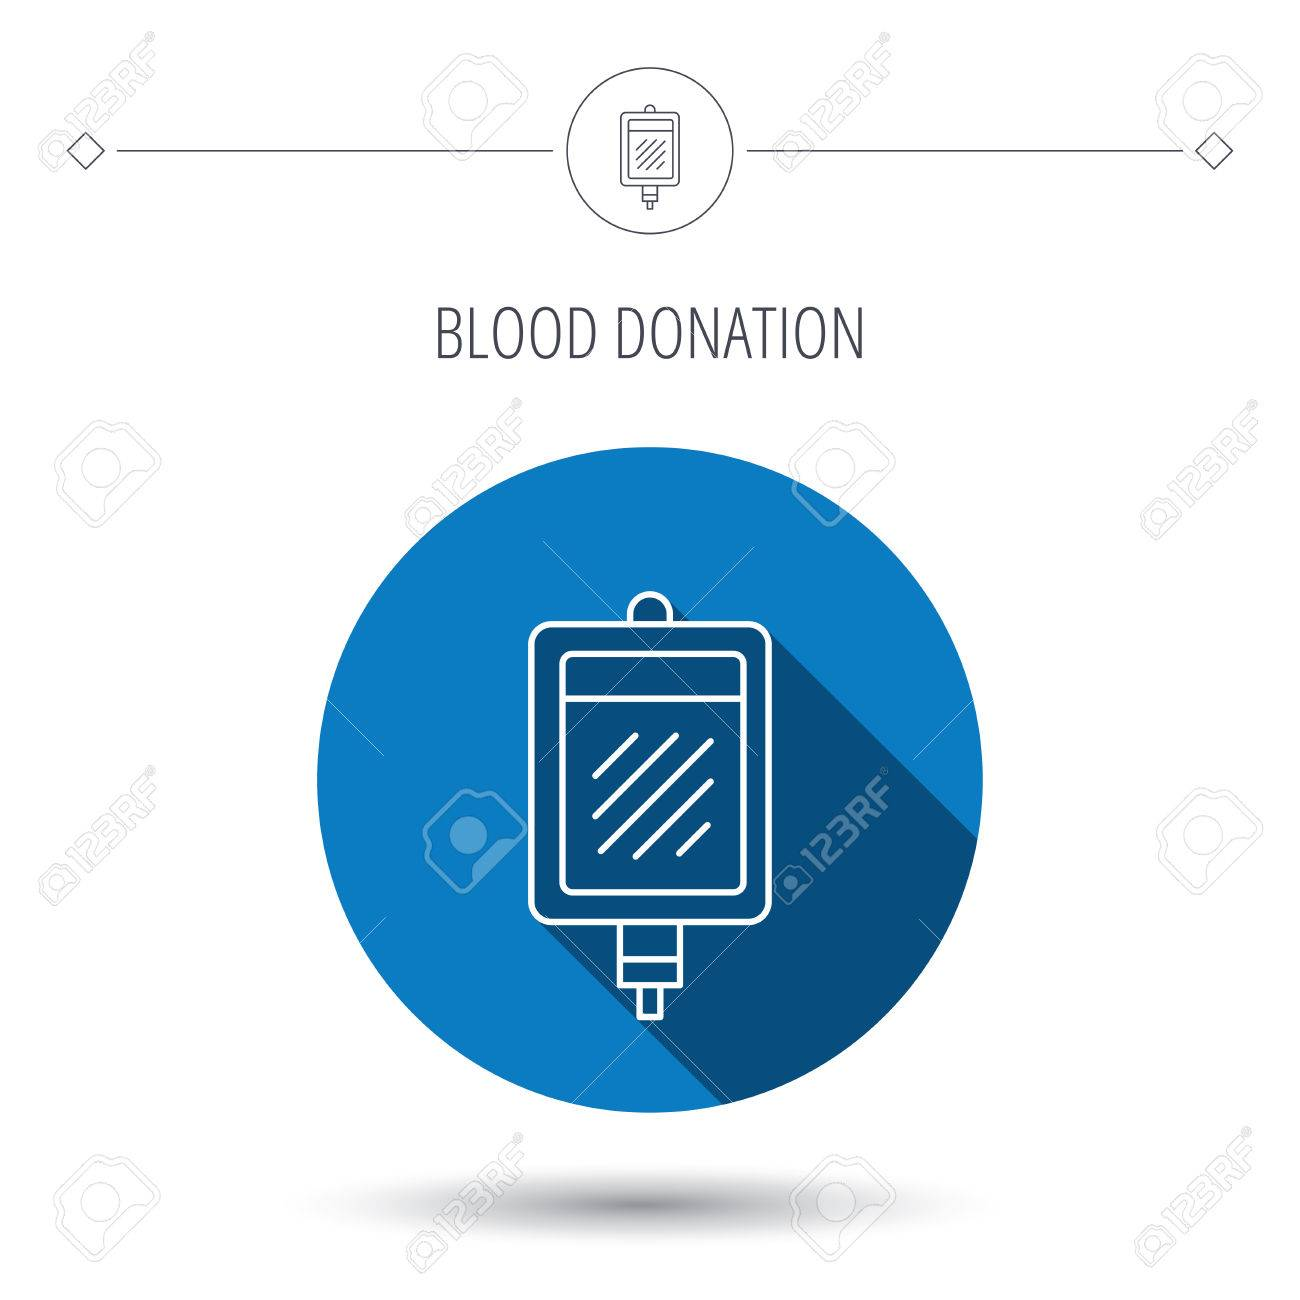 blood donation icon medicine drop counter sign blue flat circle